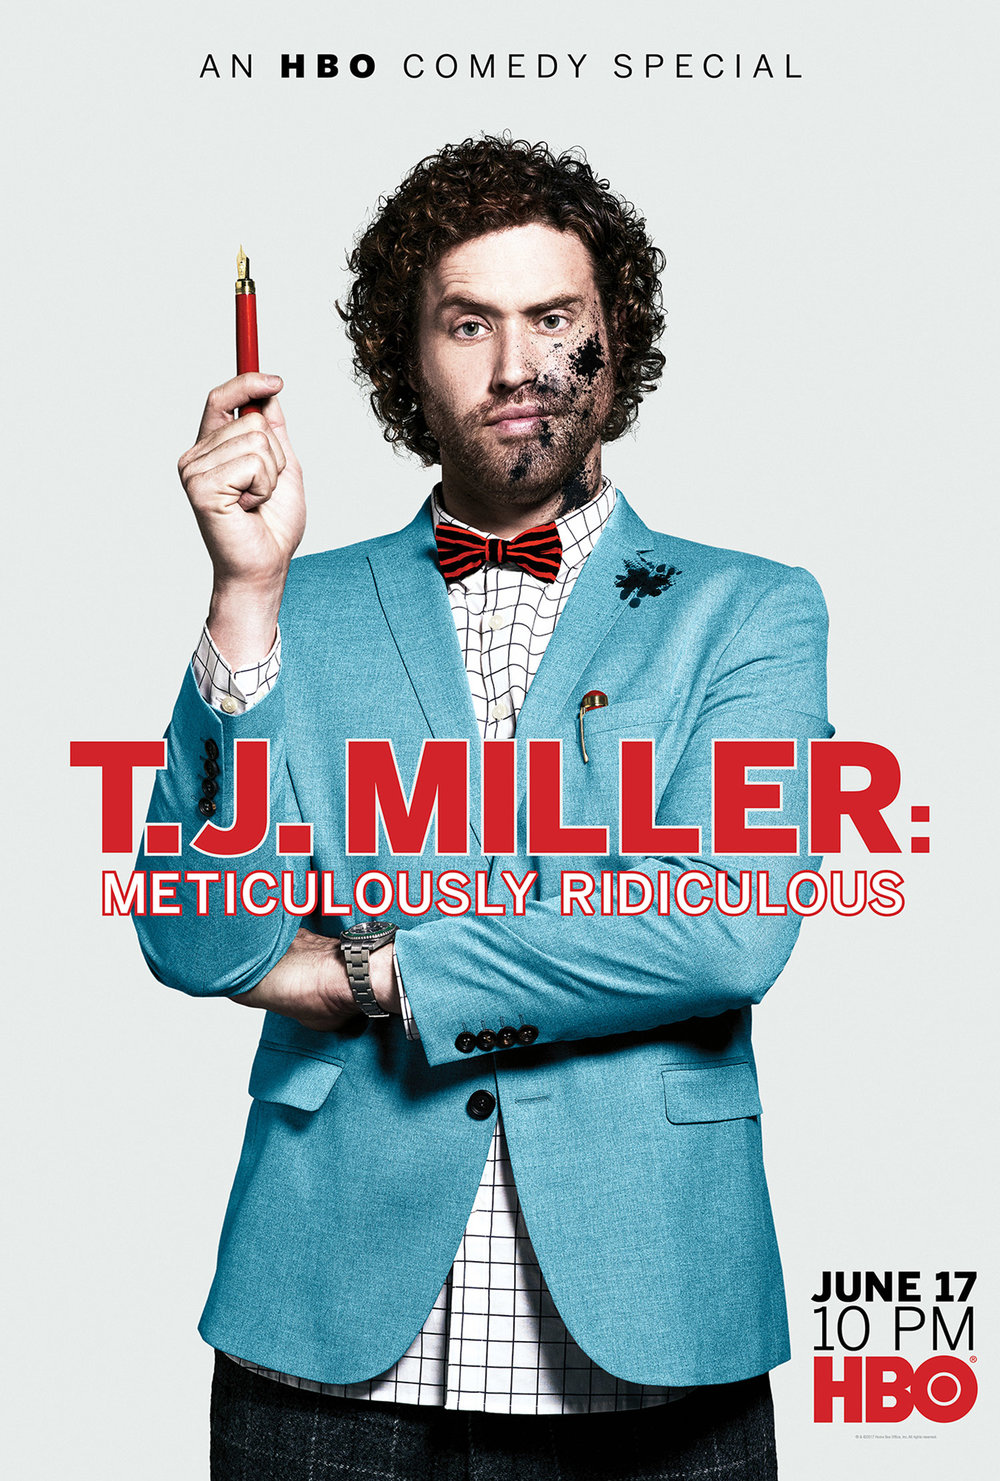 1349229_MKT-PM_TJ_Miller_MeticulouslyRidiculous_Small.jpg